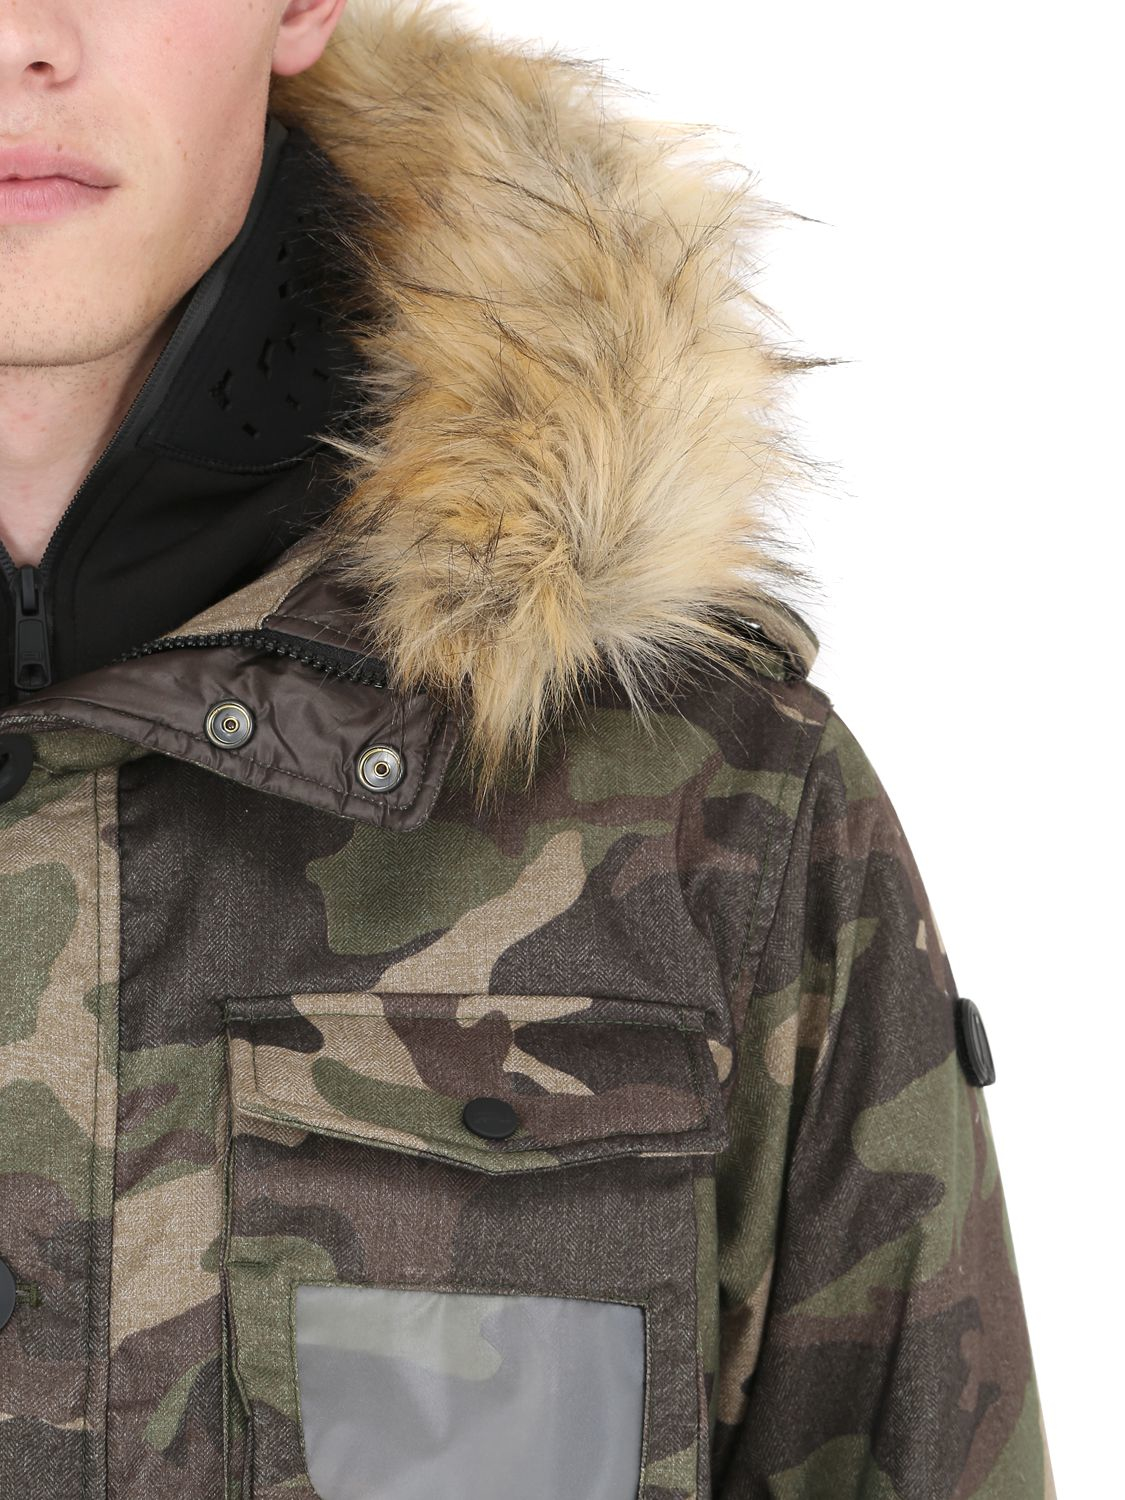 Ai Riders On The Storm Hooded Camo Print Down Parka W/ Faux Fur in Camouflage (Yellow) for Men